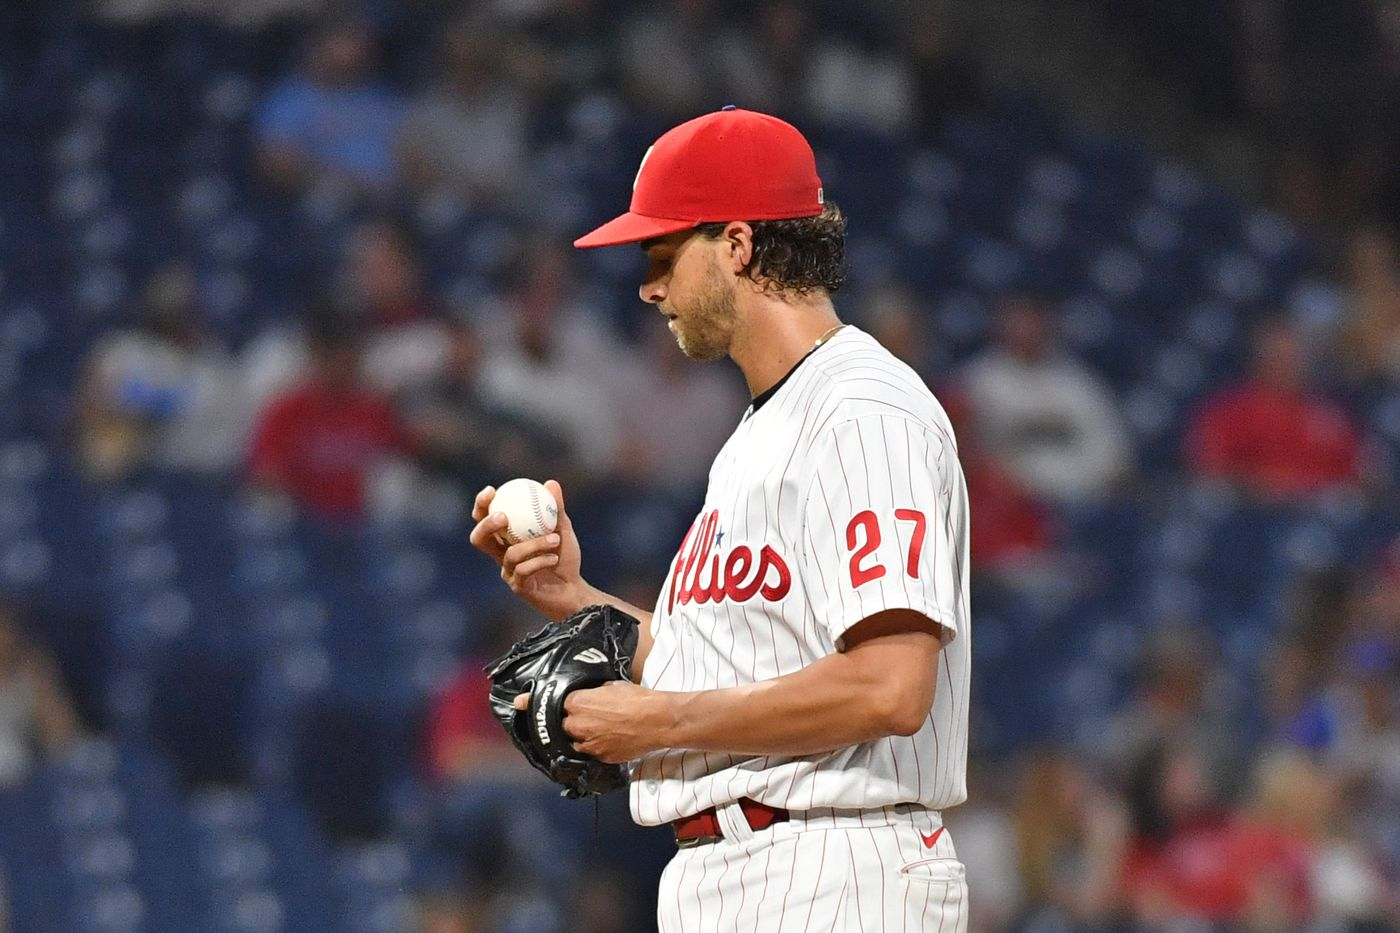 """Let's see if we can diagnose what's """"wrong"""" with Aaron Nola - The ..."""